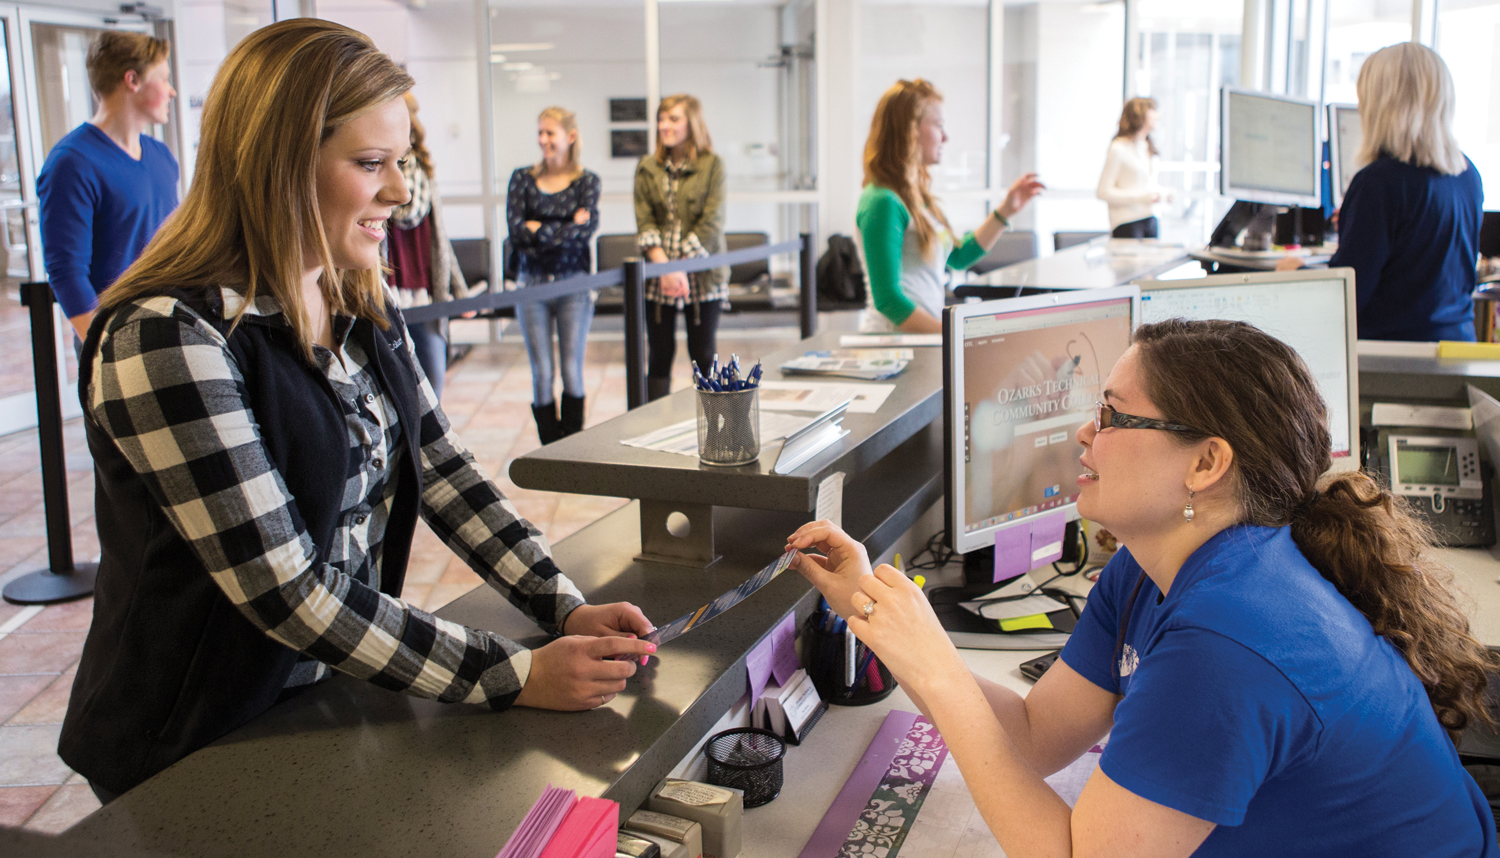 Student receiving assistance at the OTC Student Services counter